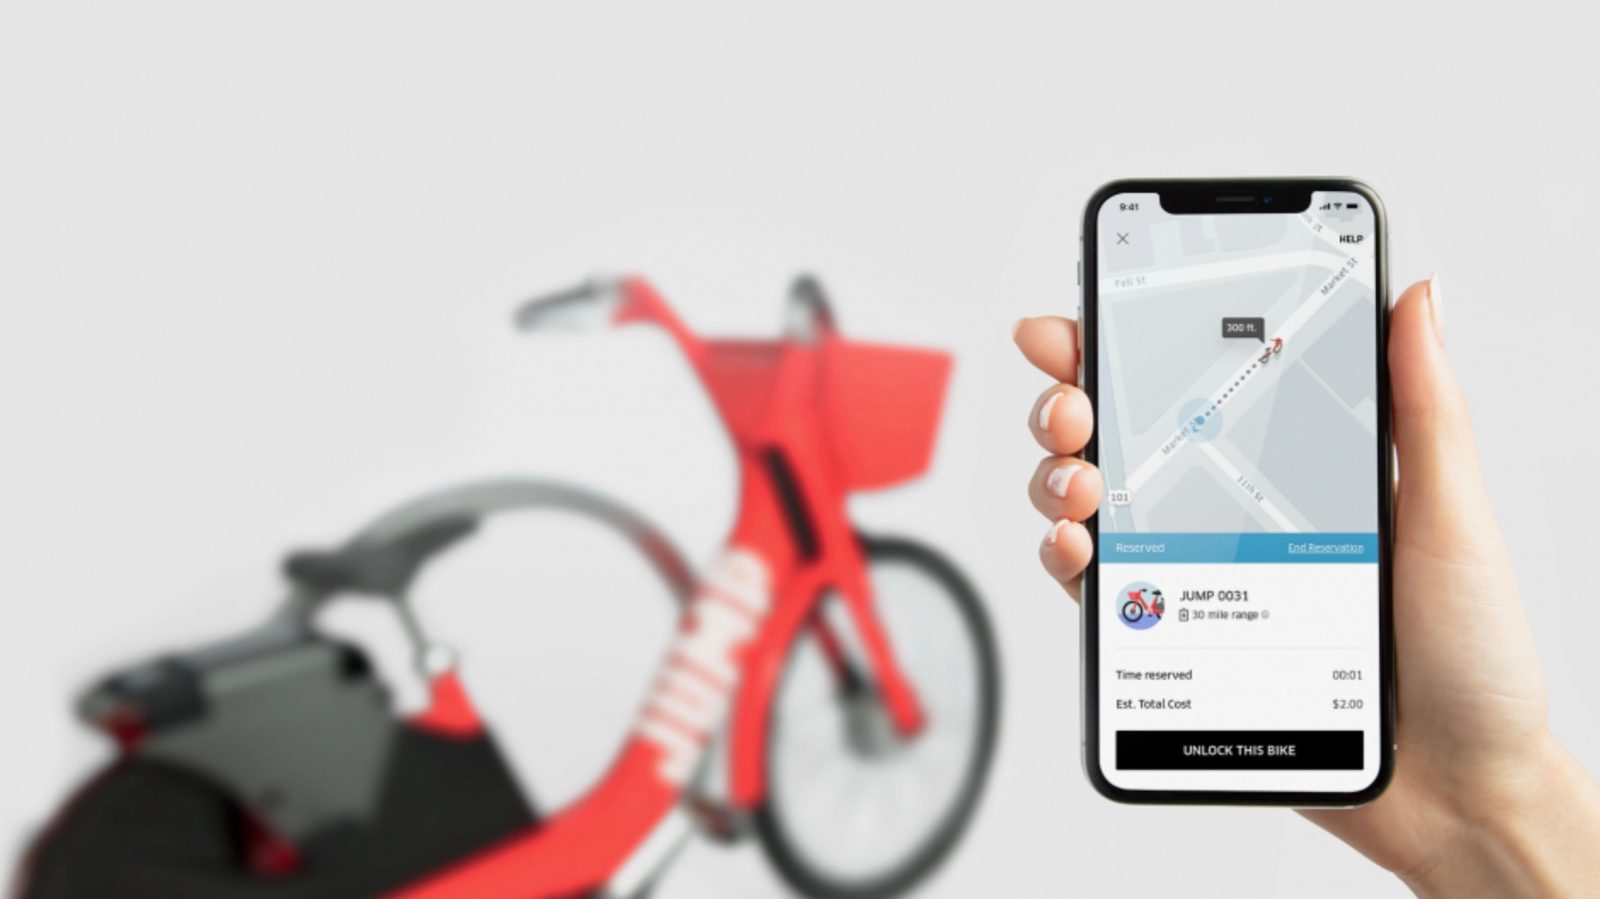 Uber shows off how to switch between ride-share, bikes